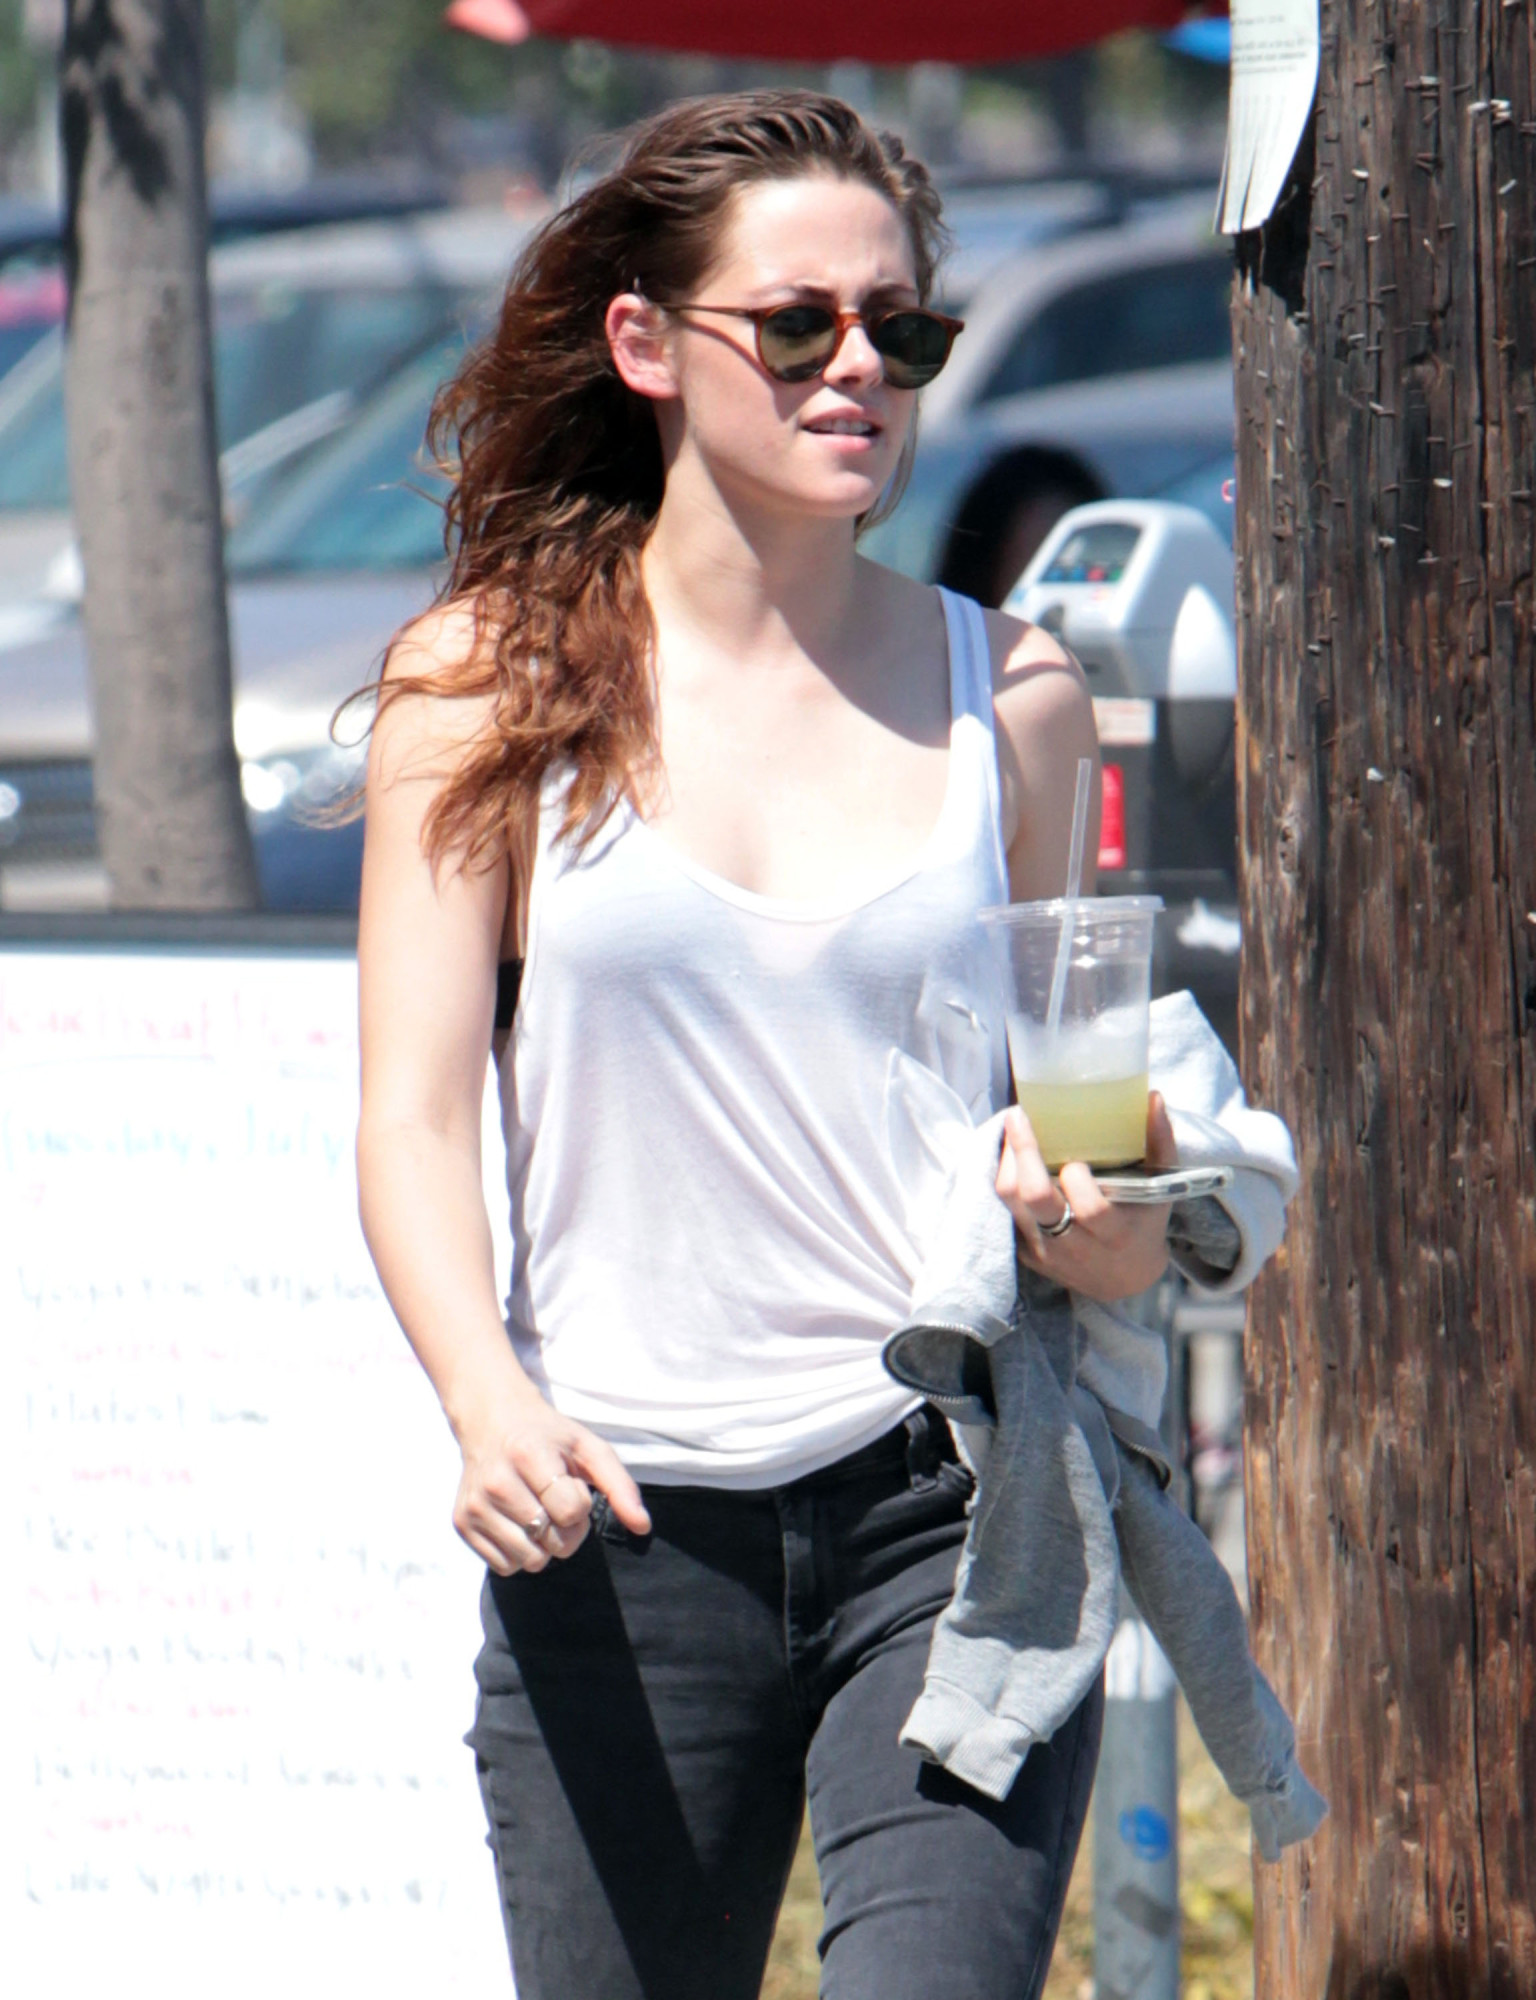 kristen stewart flashes bra through seethrough shirt